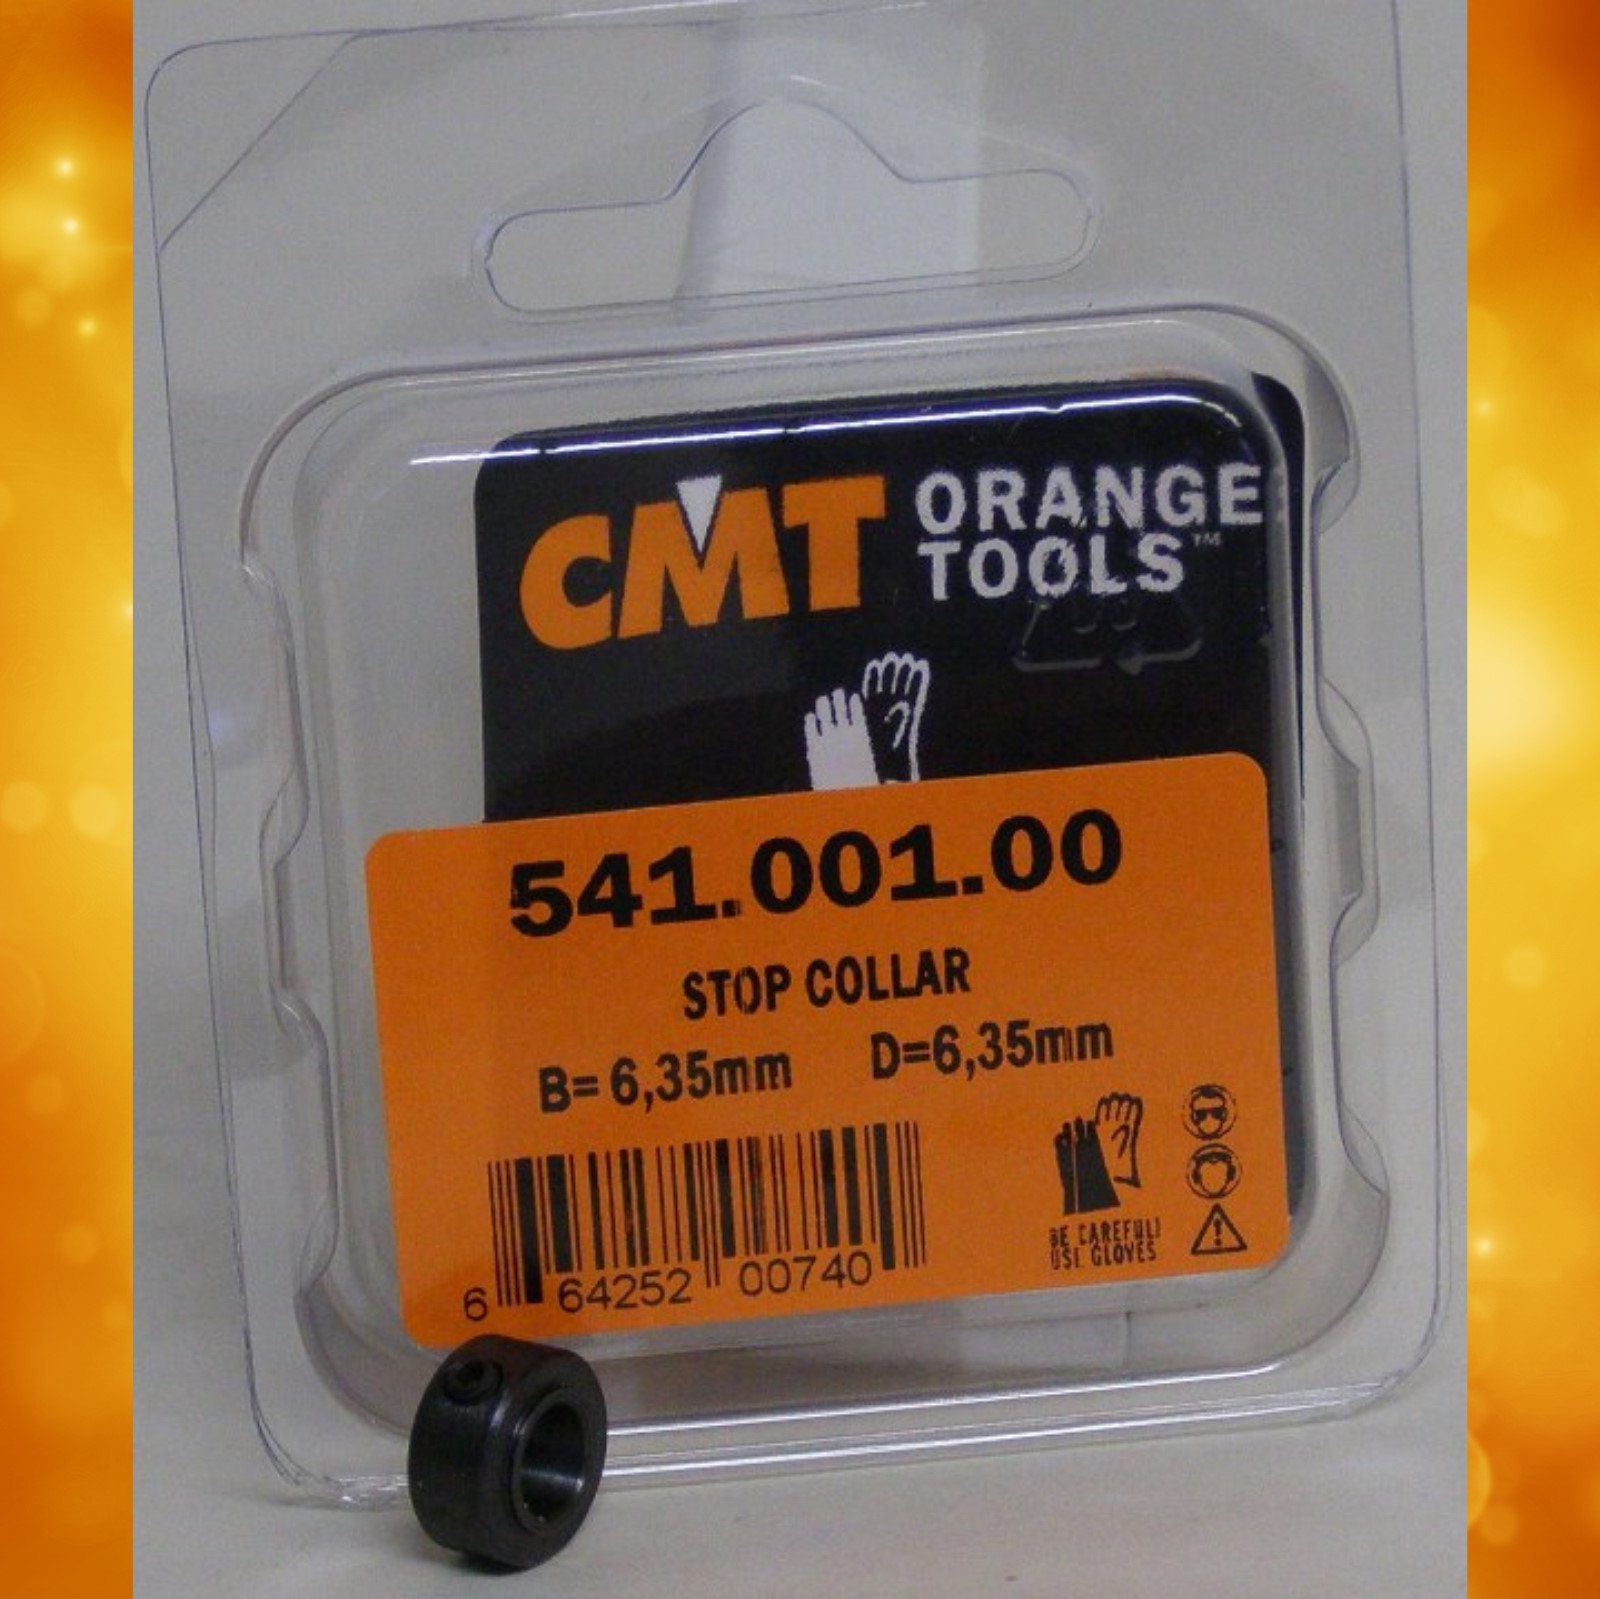 "CMT Stop Collars for 1/4"" Shanks 541.001.00"